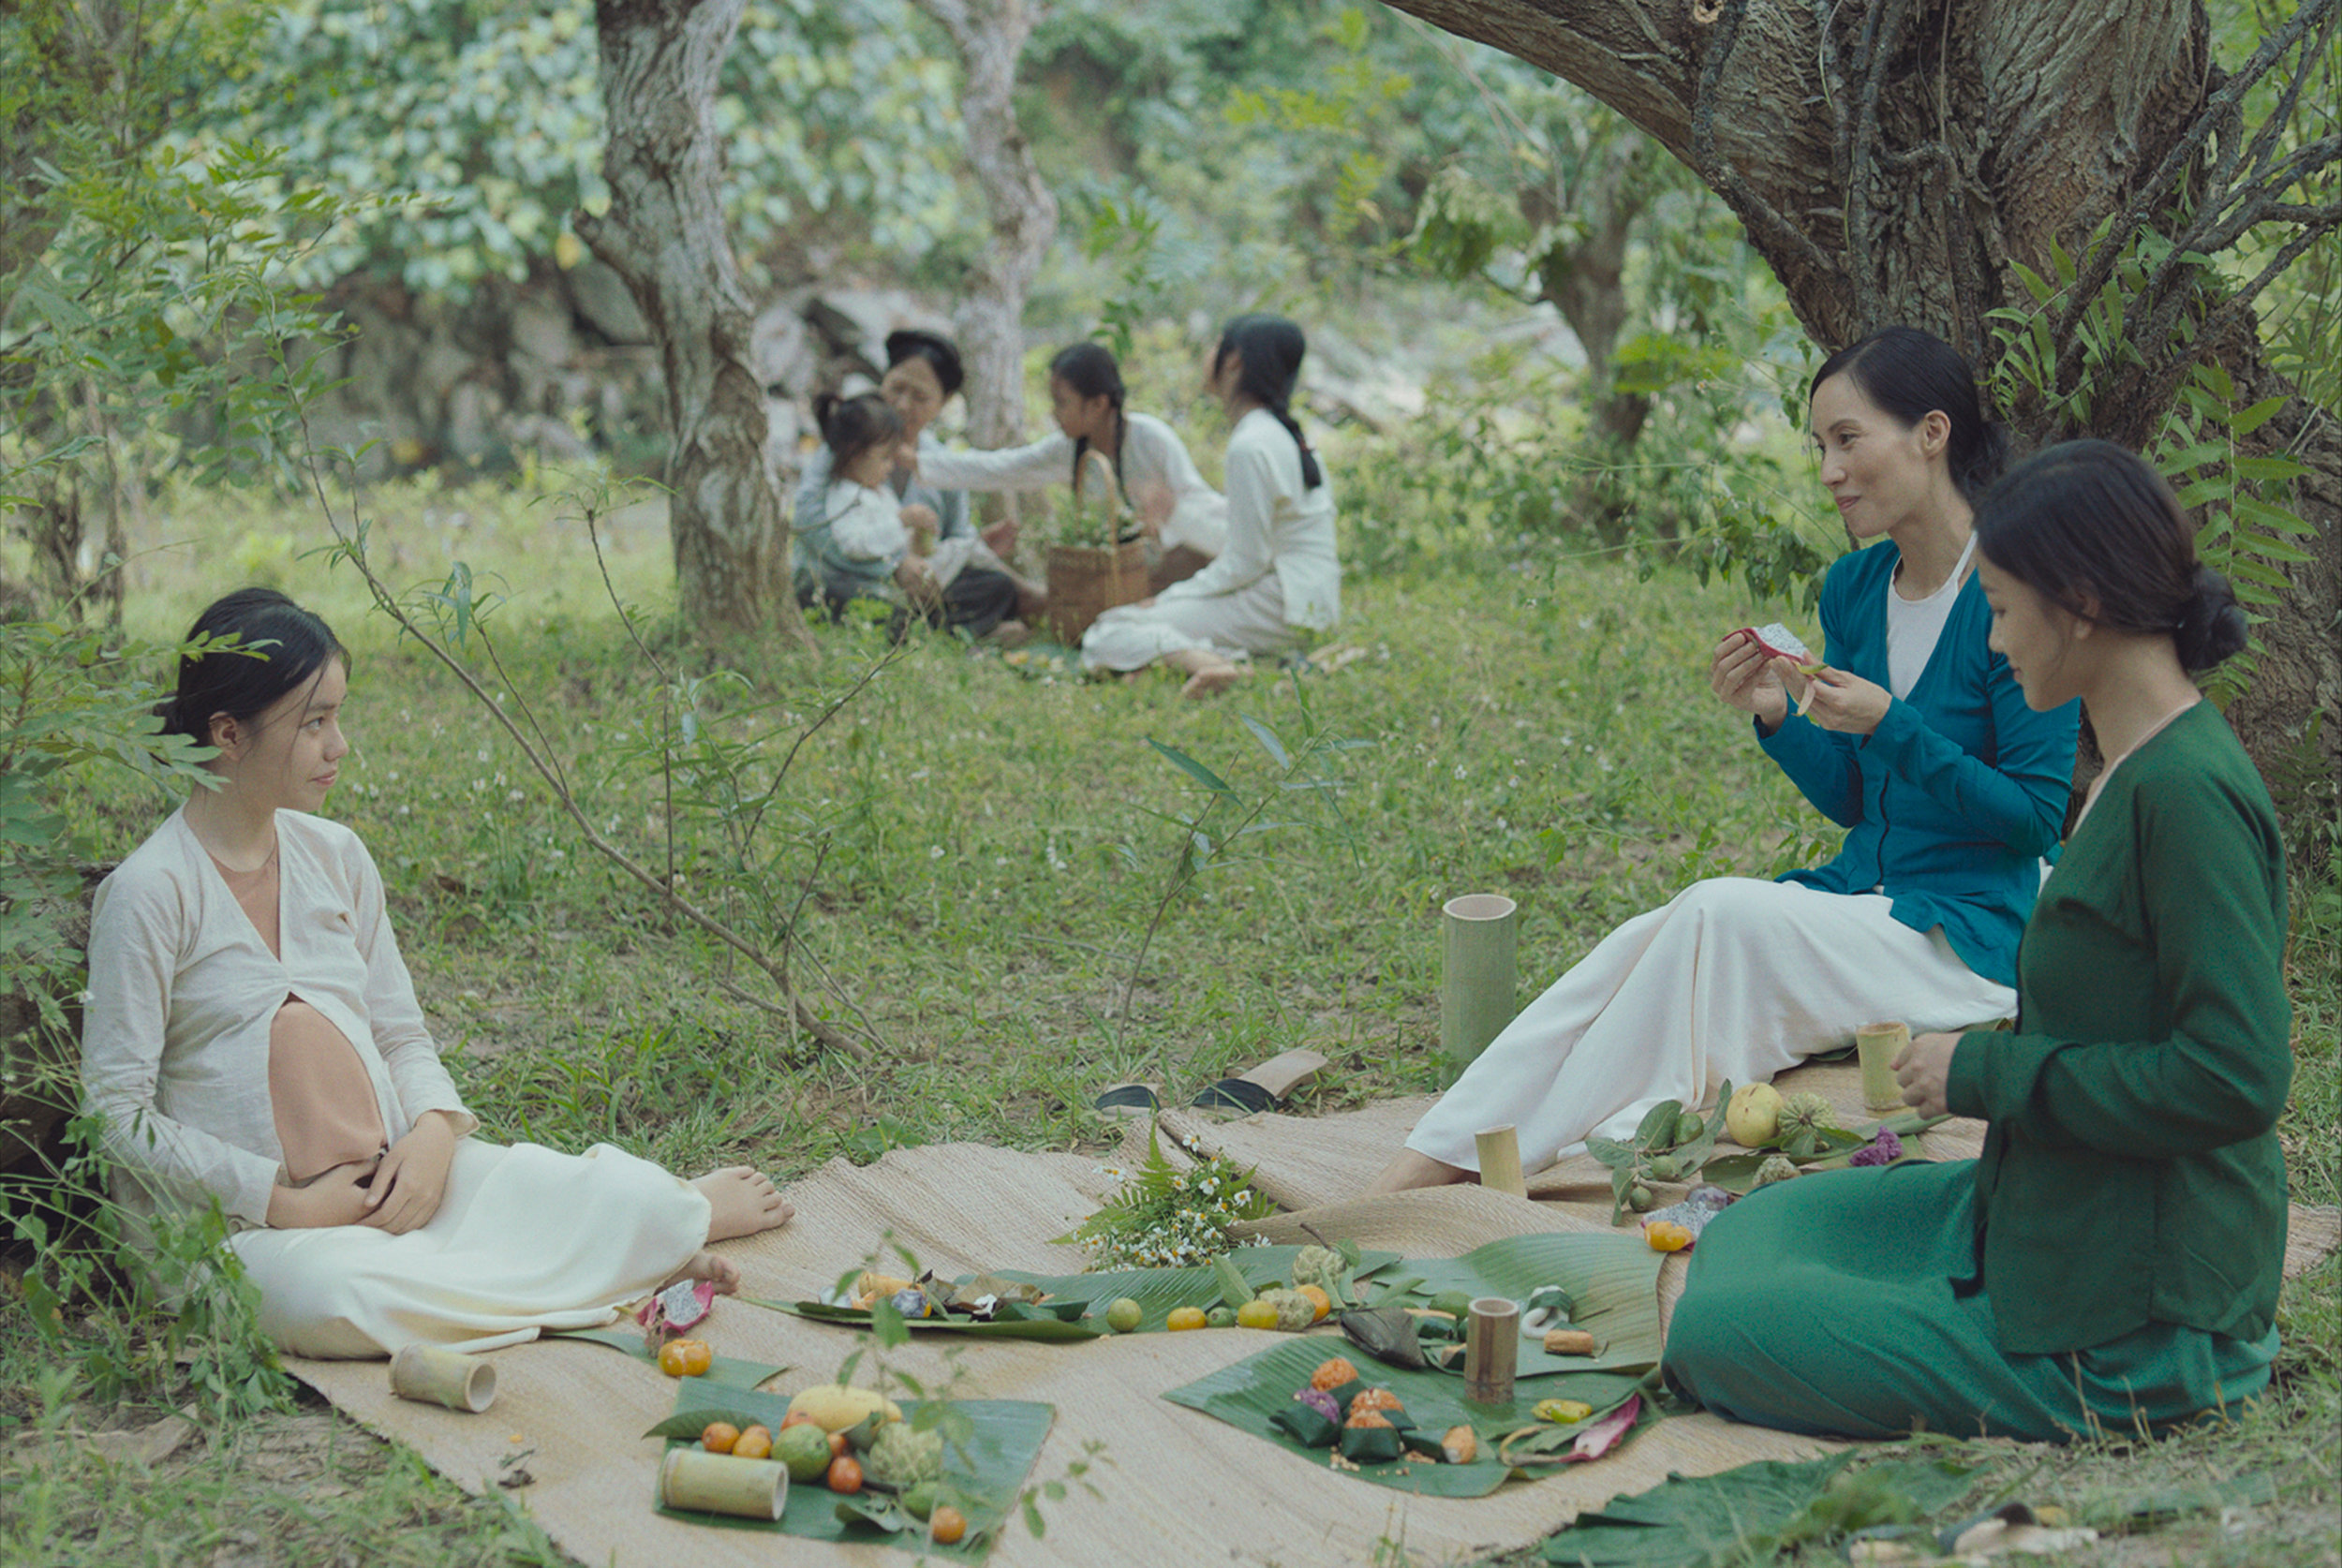 The Third Wife - Disturbing yet designed with beauty in every breath at Sydney Film Festival.